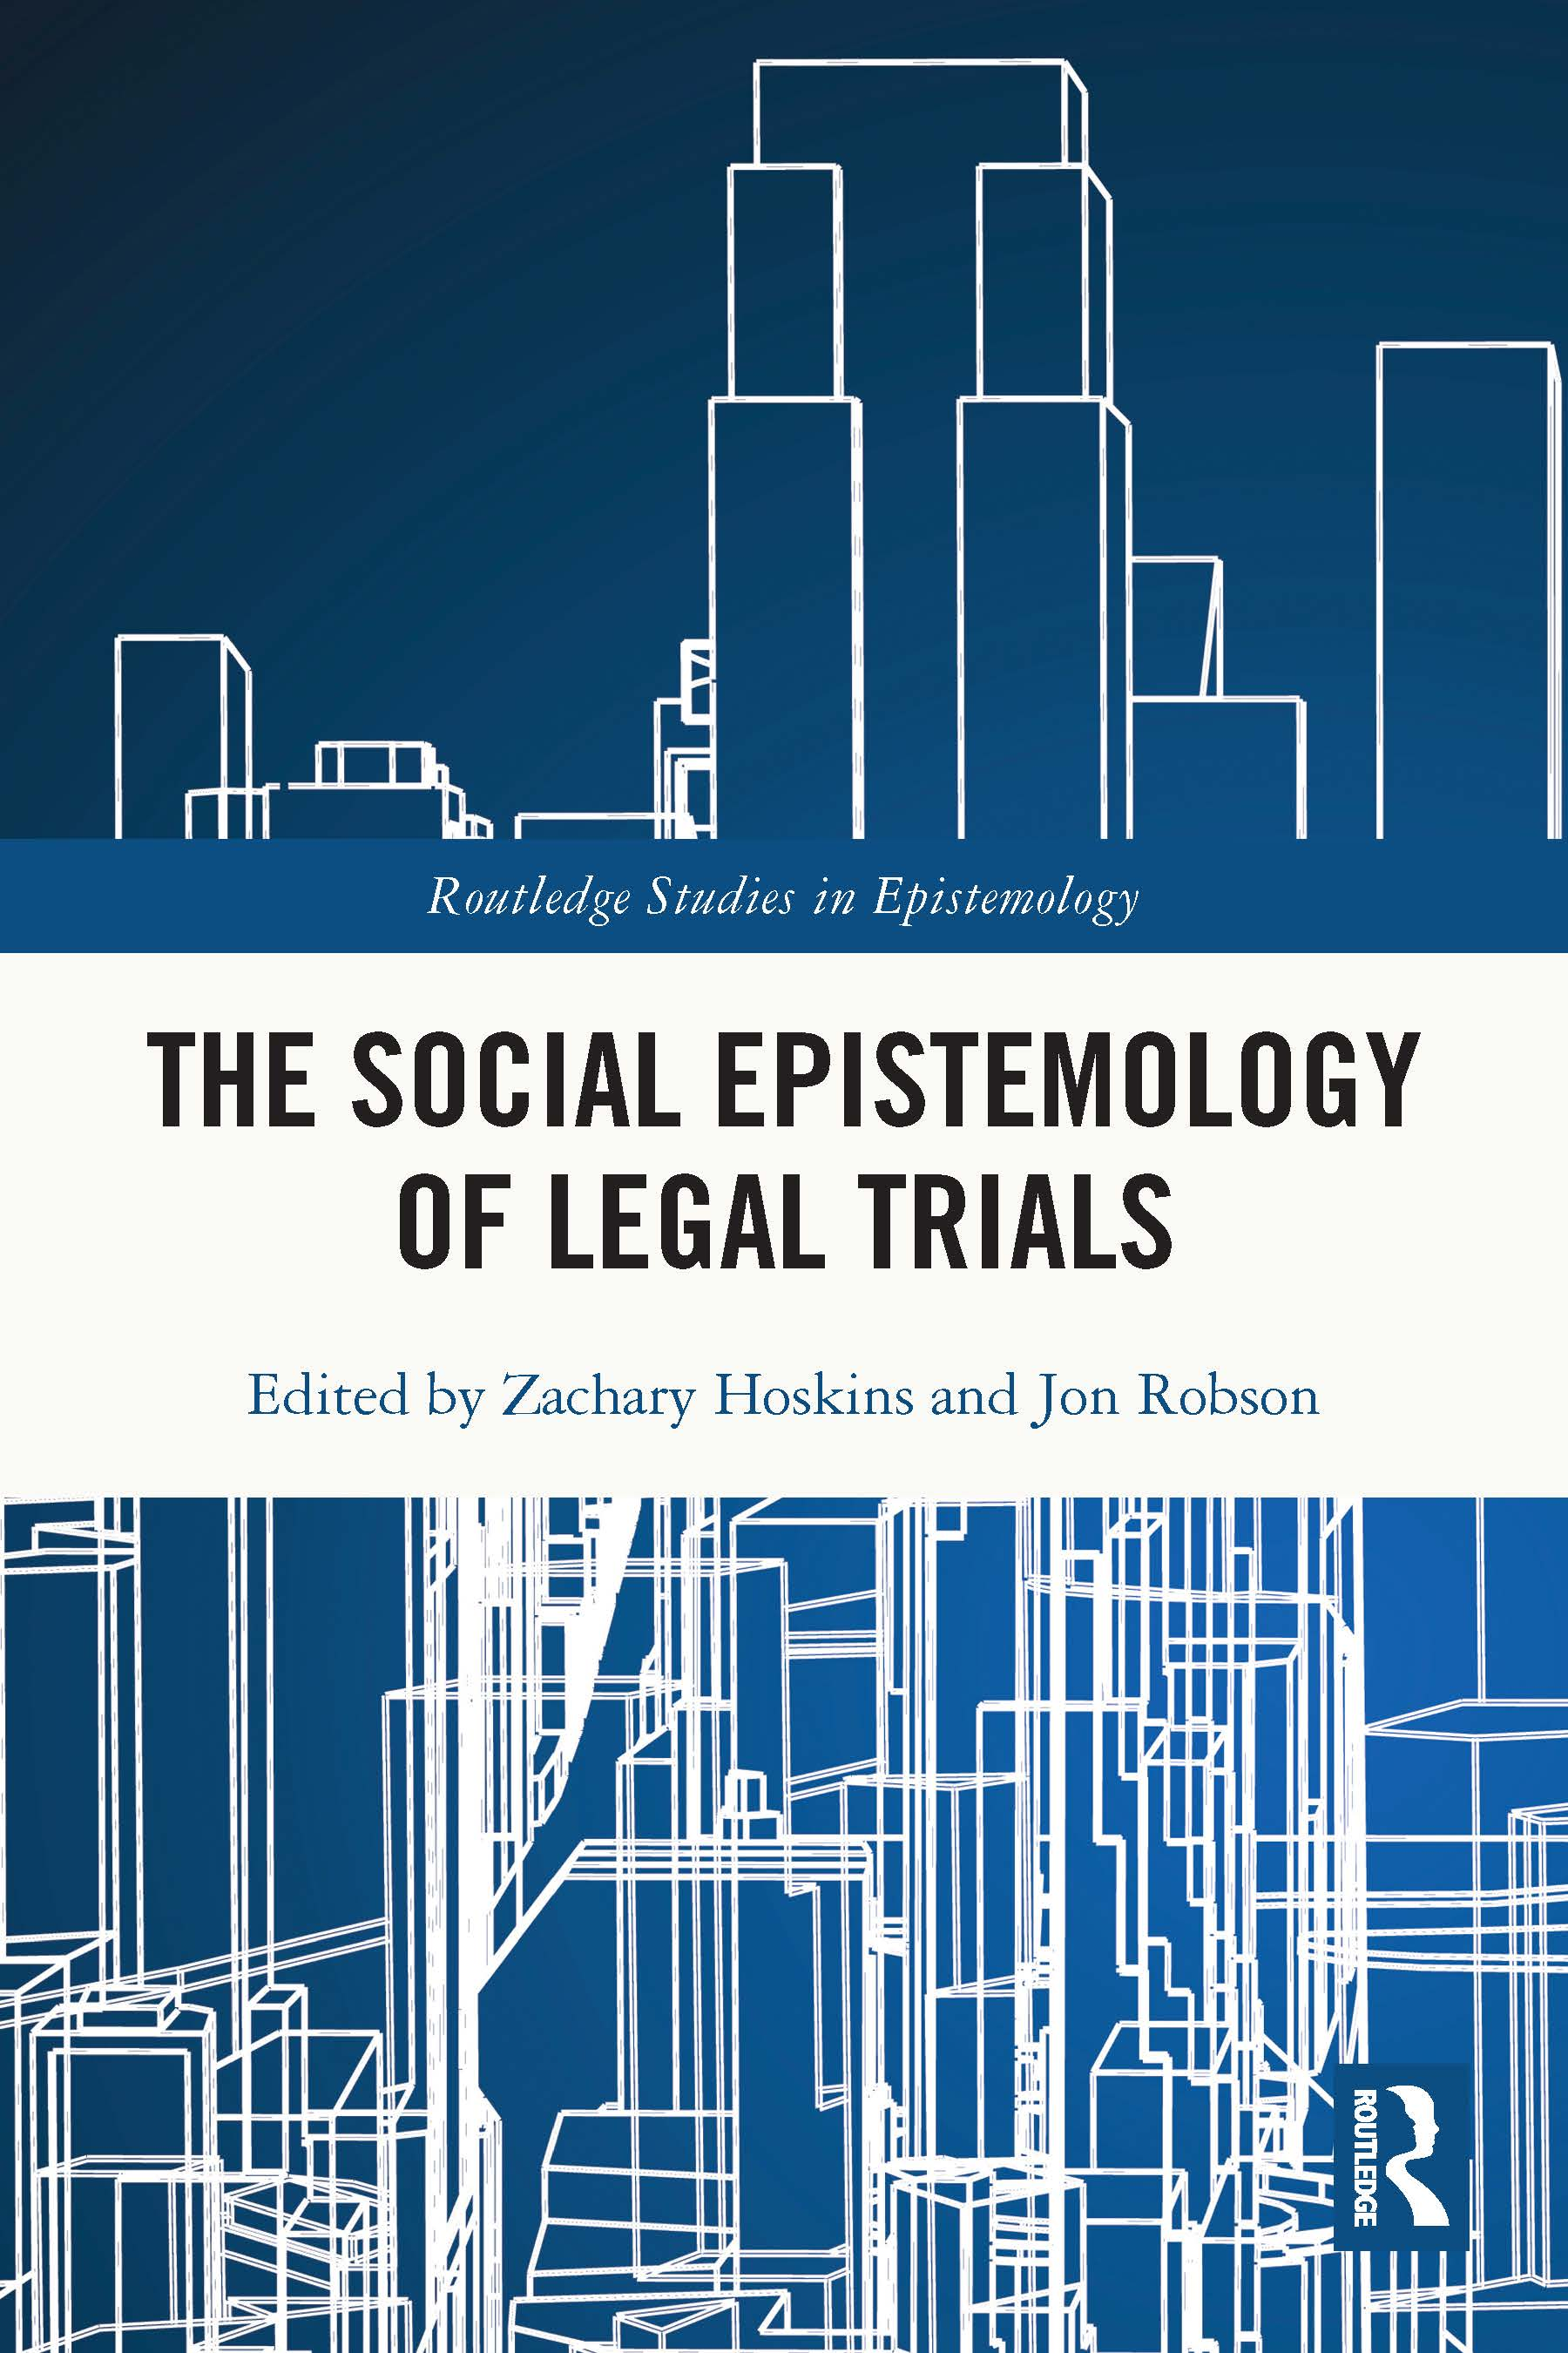 The Social Epistemology of Legal Trials